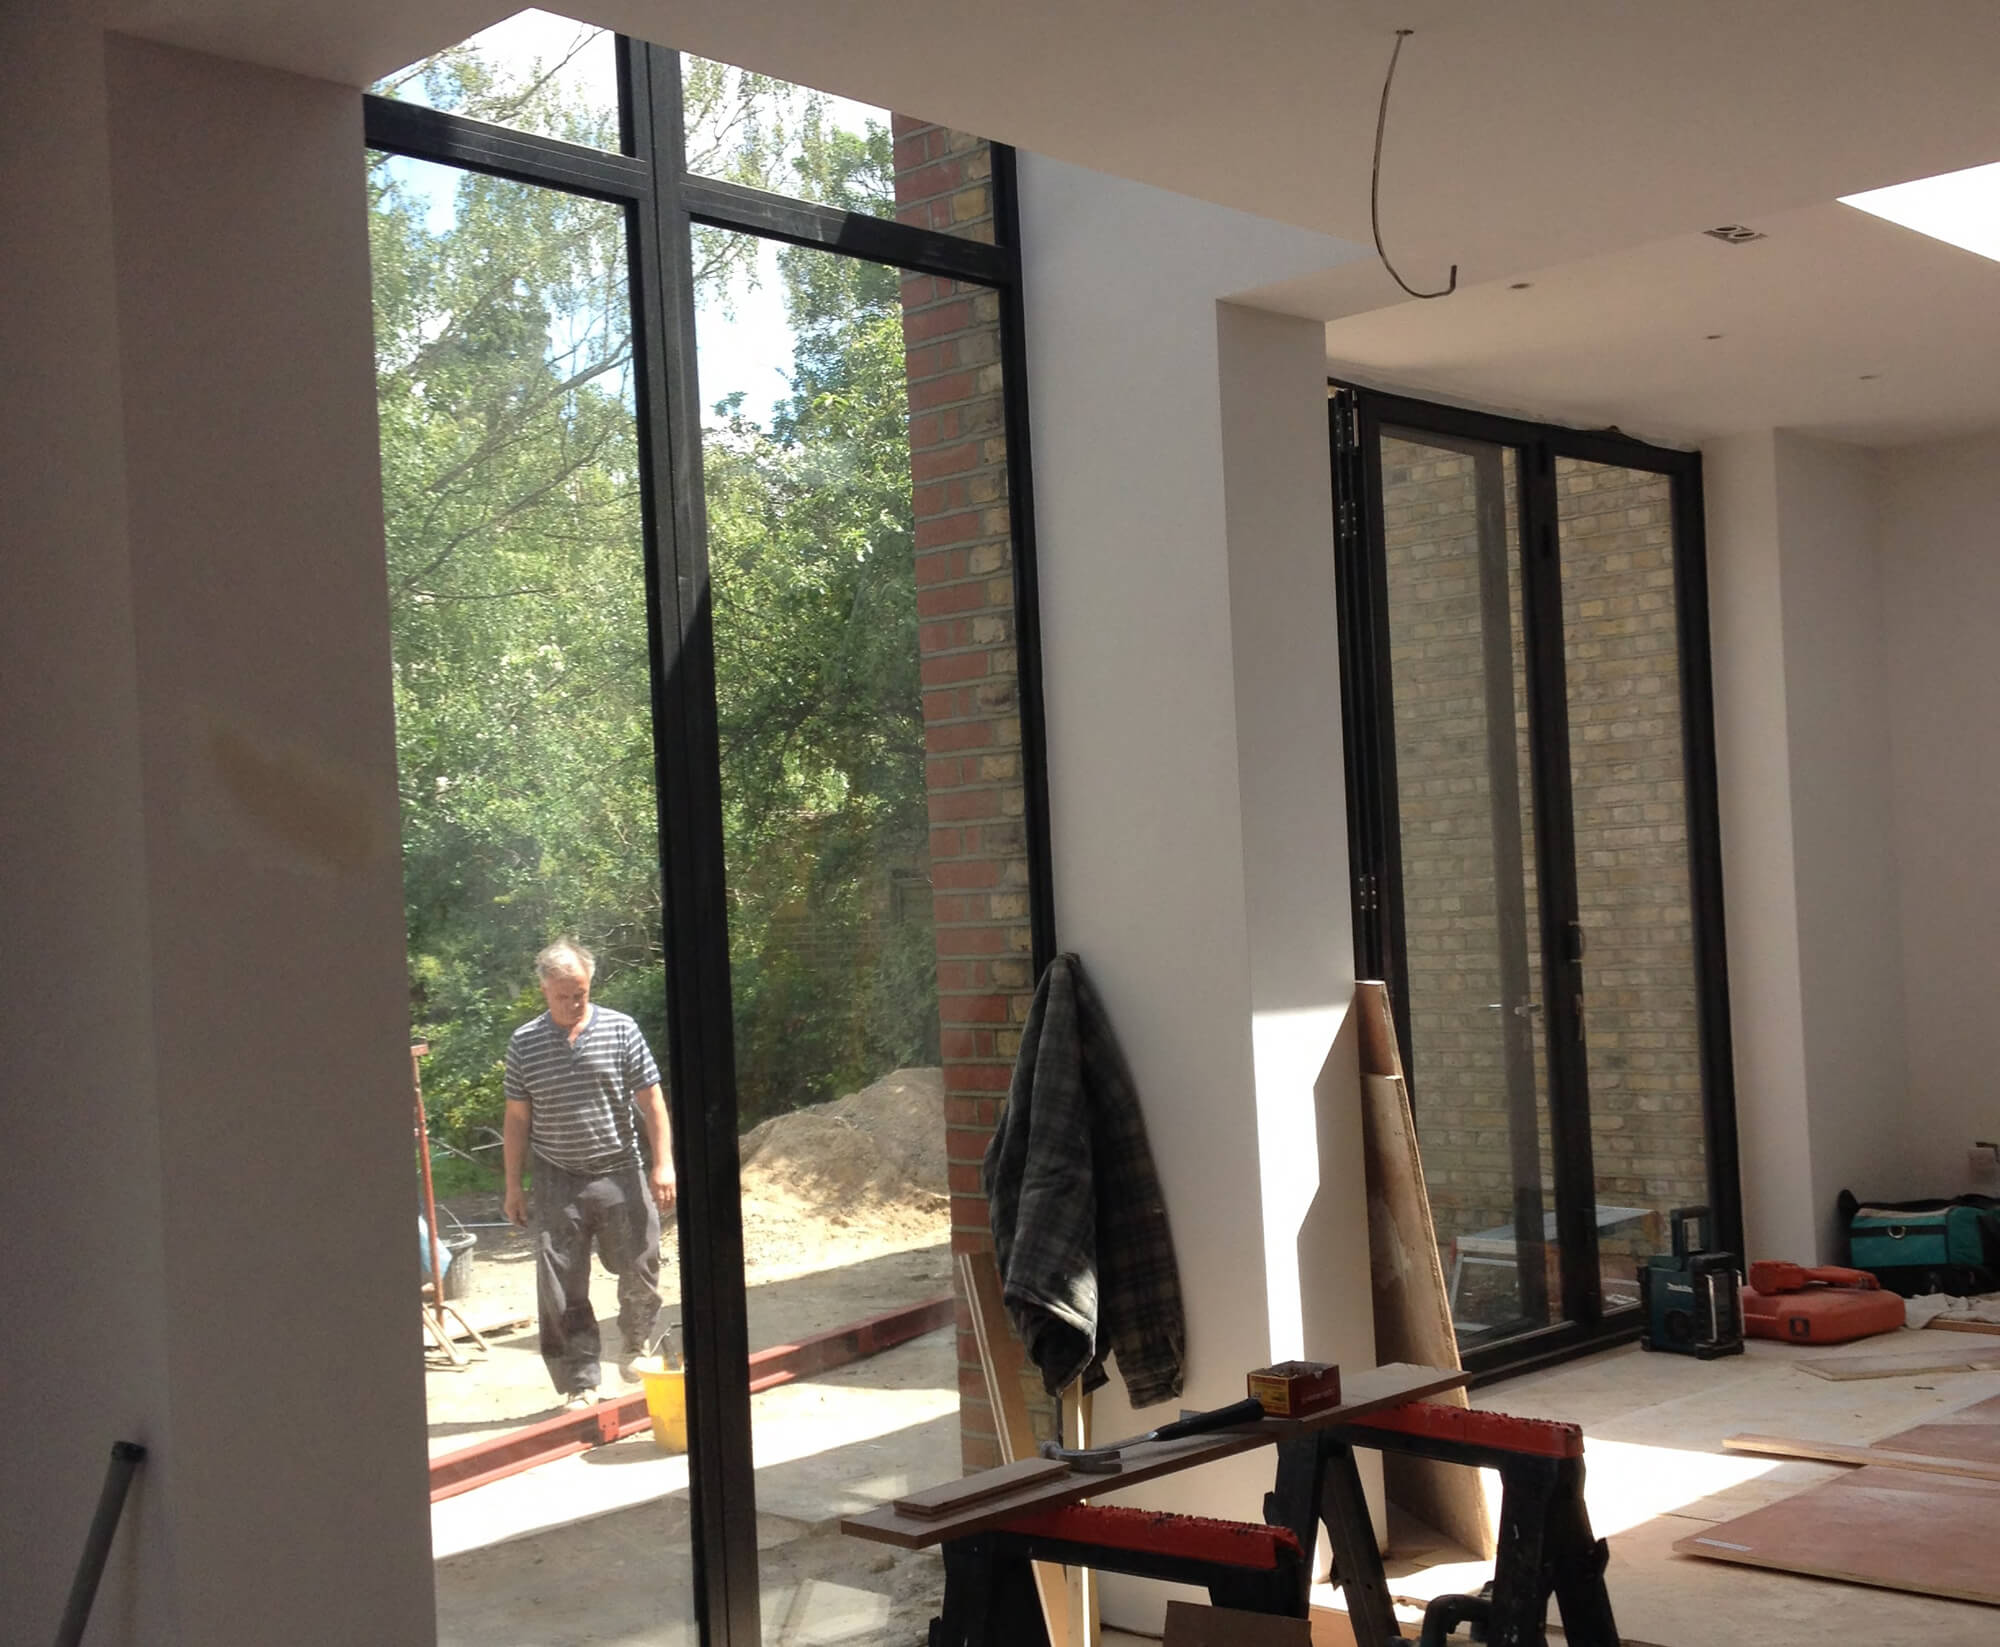 Marguerite Murdoch Architects - Based in Teddington, Richmond Upon Thames - Project Process - House Construction Extension Photo